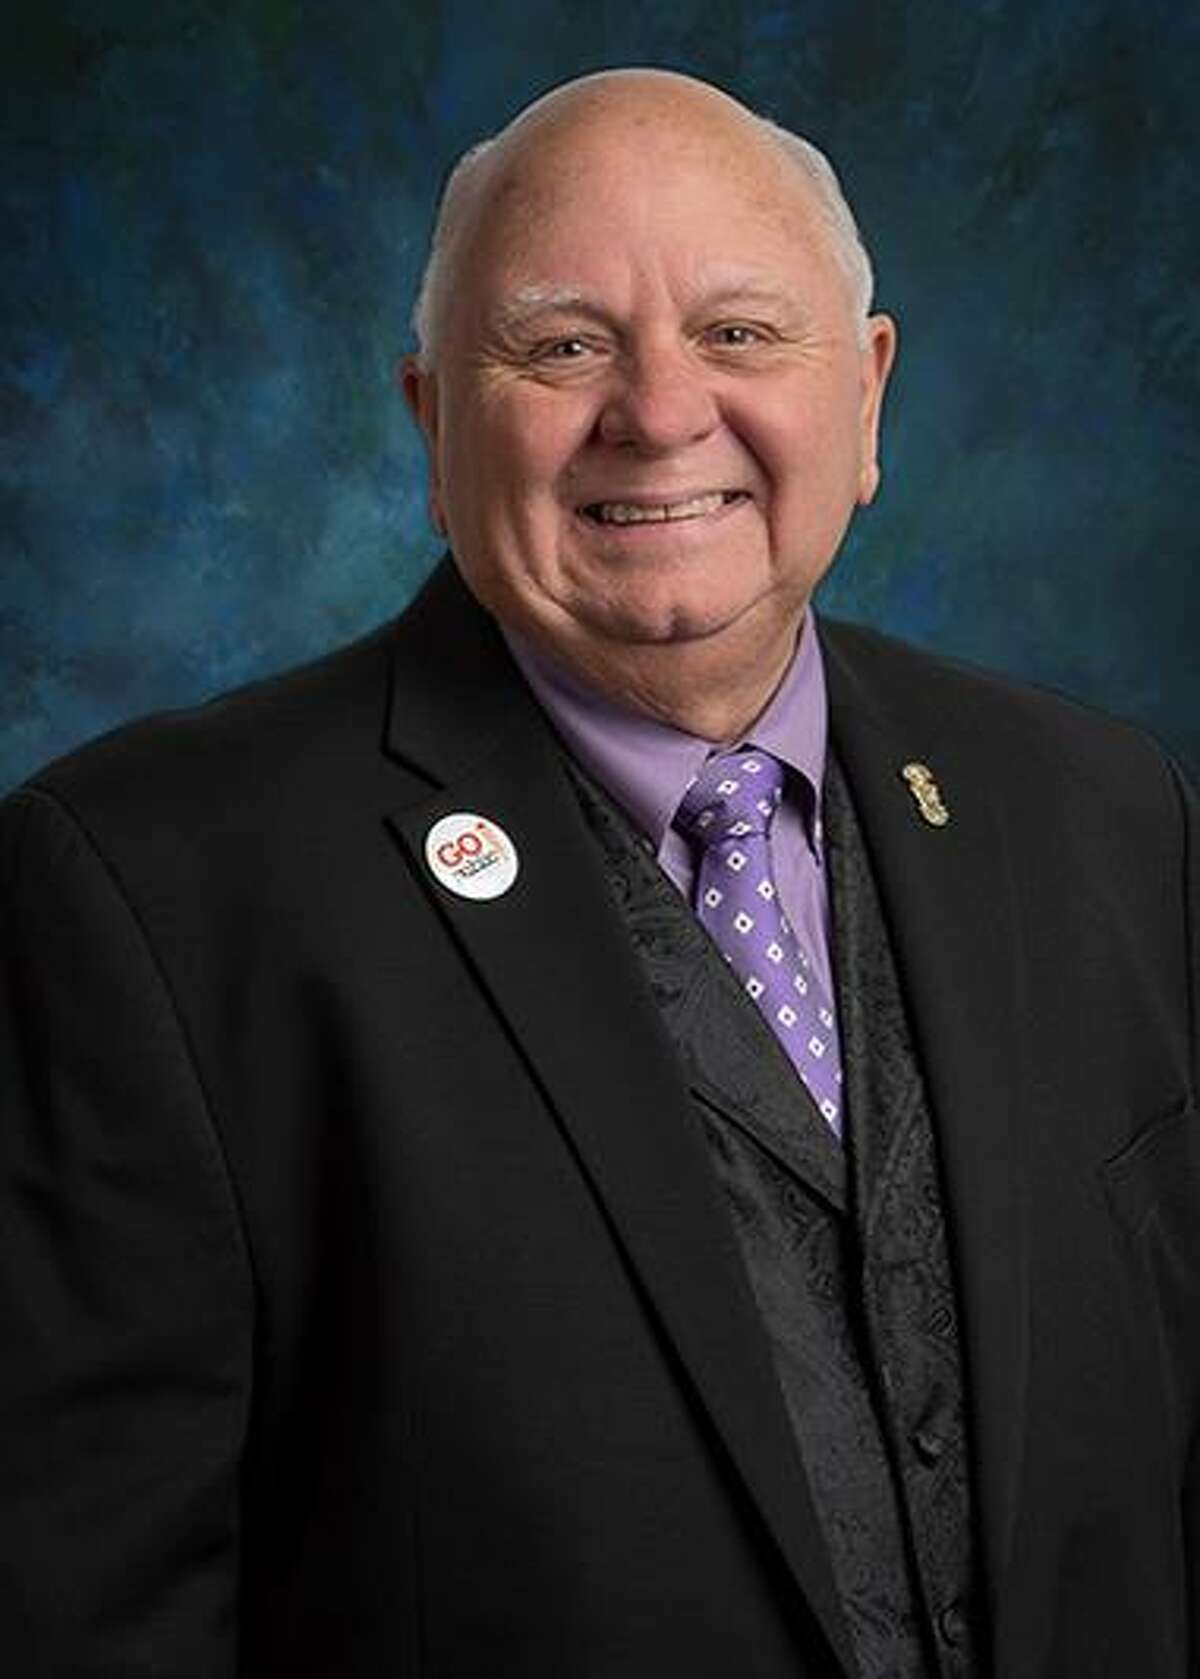 Bob Covey, CFISD Board of Trustees president, will be honored and recognized as a member of the Texas State University Distinguished Alumni Class of 2021 at the Distinguished Alumni Gala on Nov. 5 in the Grand Ballroom of the LBJ Student Center in San Marcos.